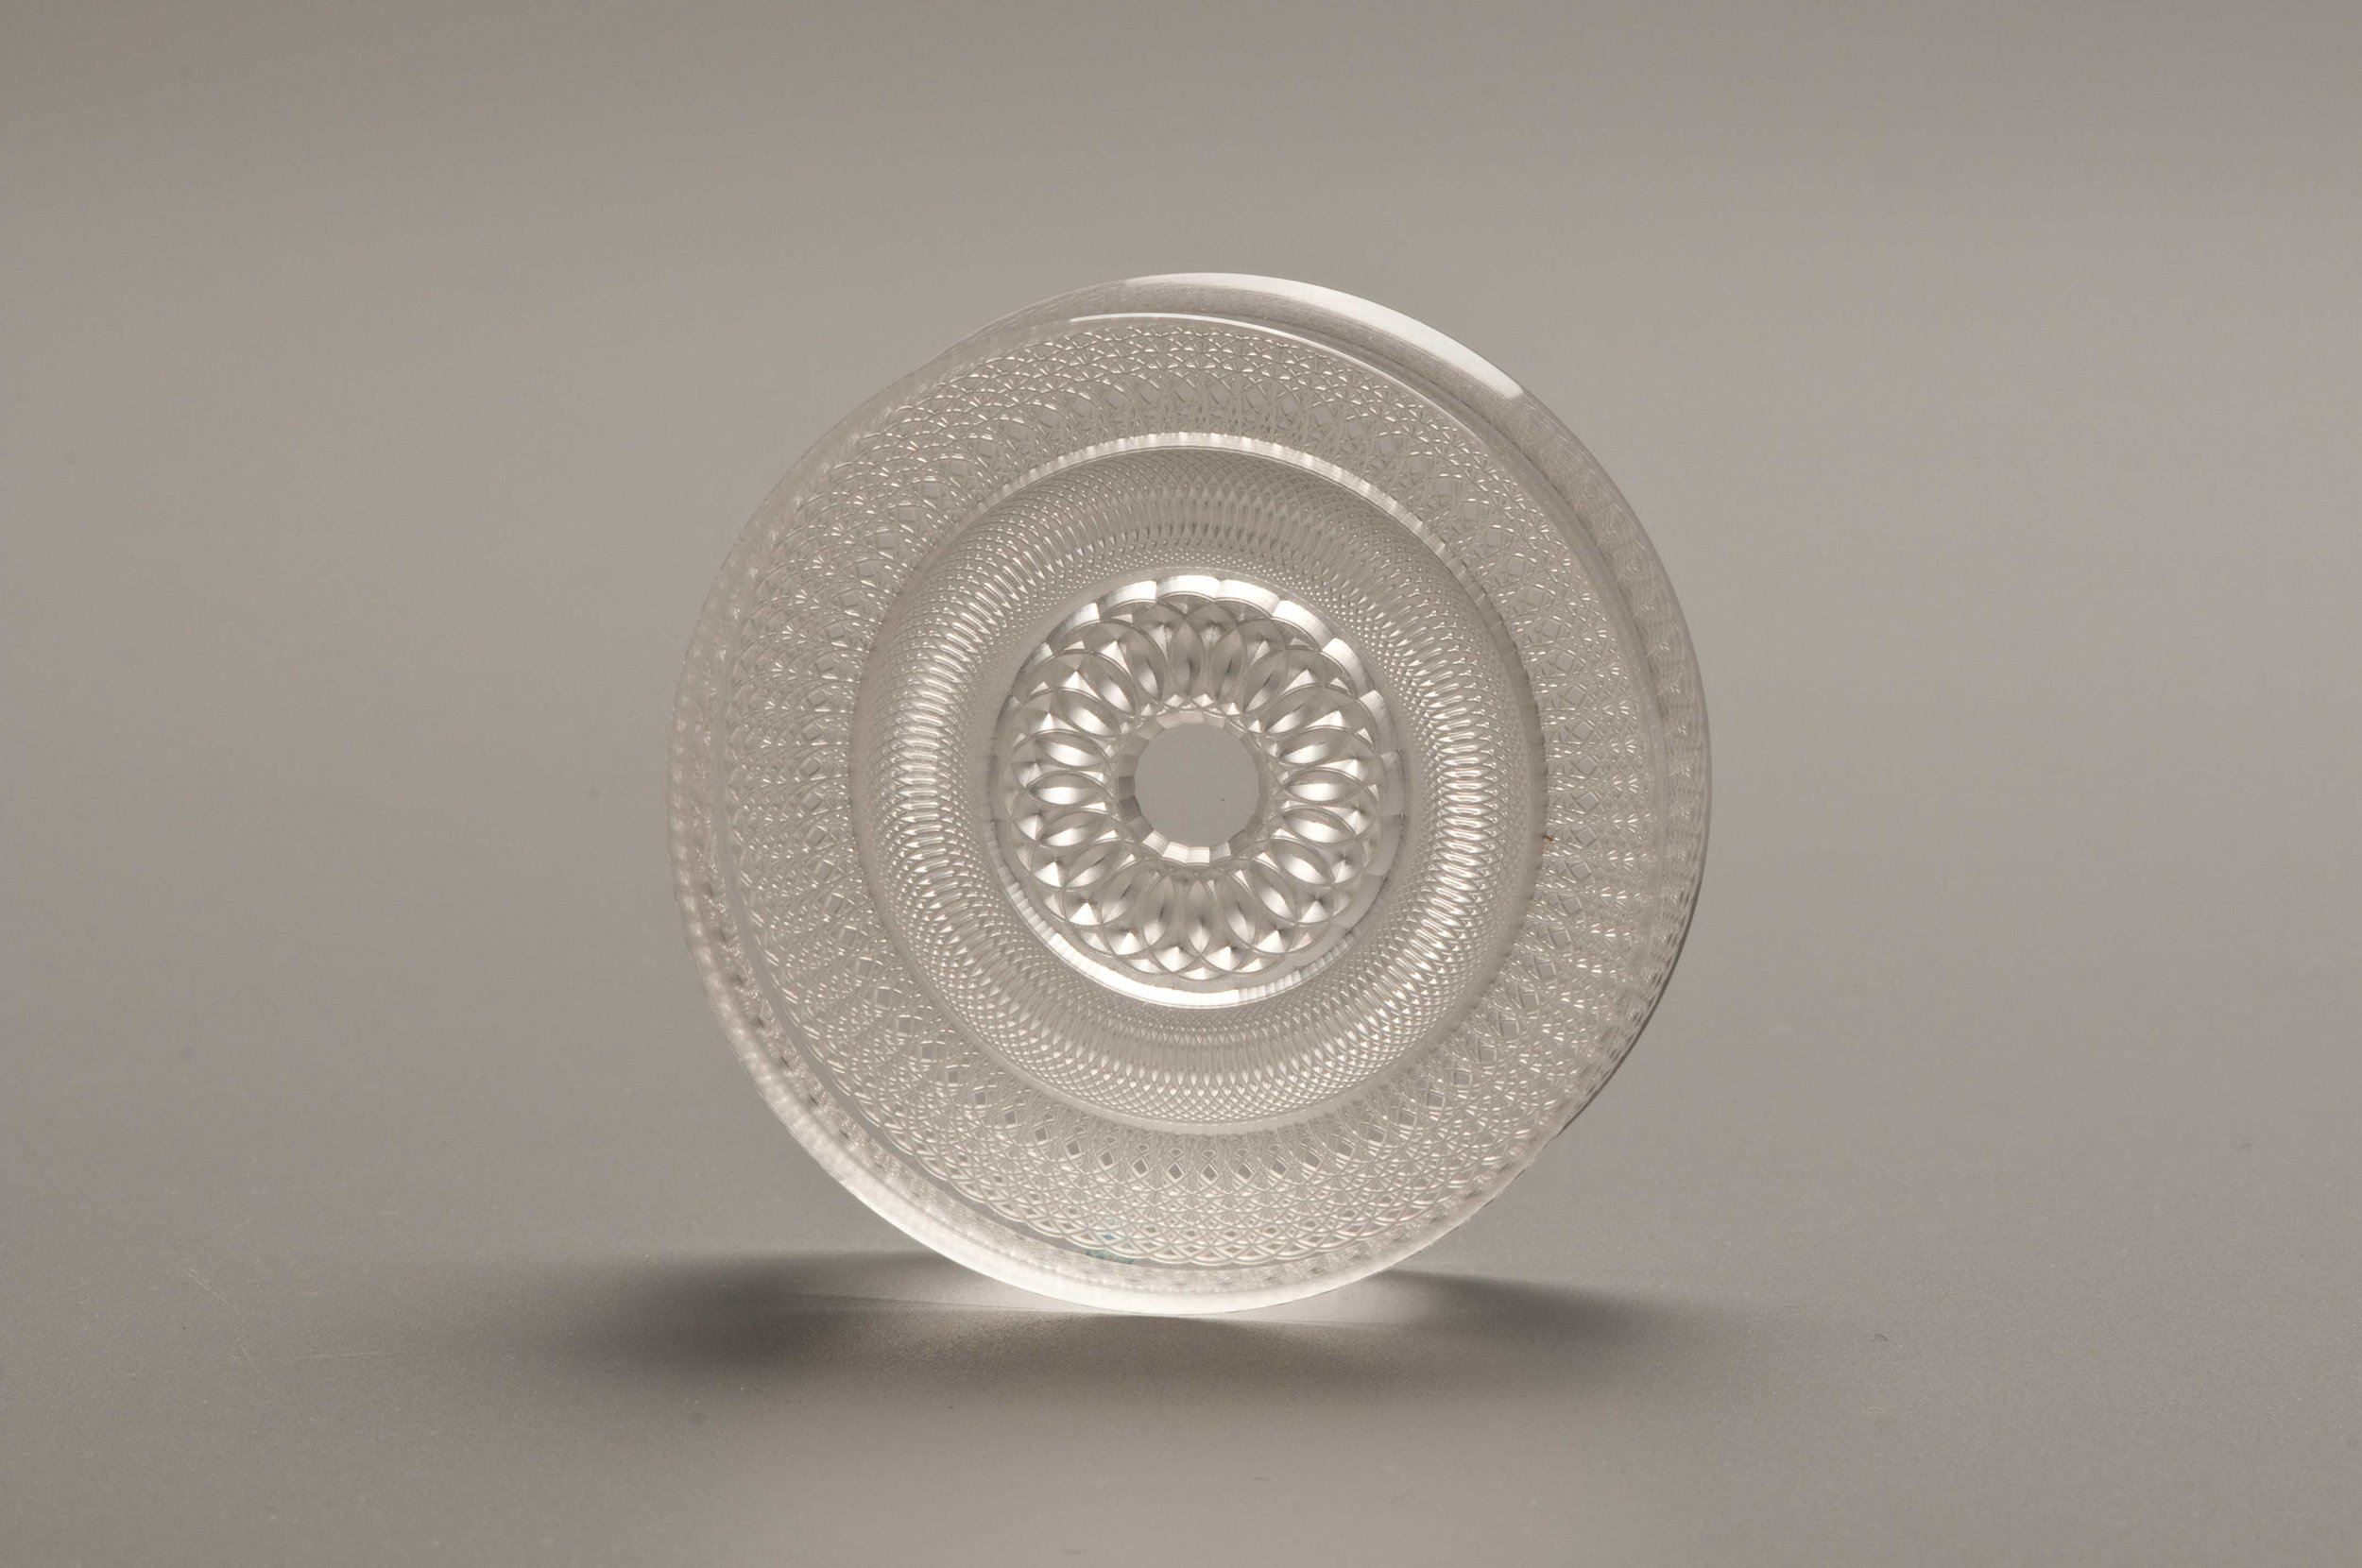 Fig. 26.   Dave Hardy, Ken Wurtzel, and Mark Krick, United States.  Paper Weight , 1992. Plexiglas, Computerized on HaWK lathe. 7/8 x 3 in. dia. Donated by the Artists. The Center for Art in Wood's Museum Collection. OBJ 905. Photo: John Carlano